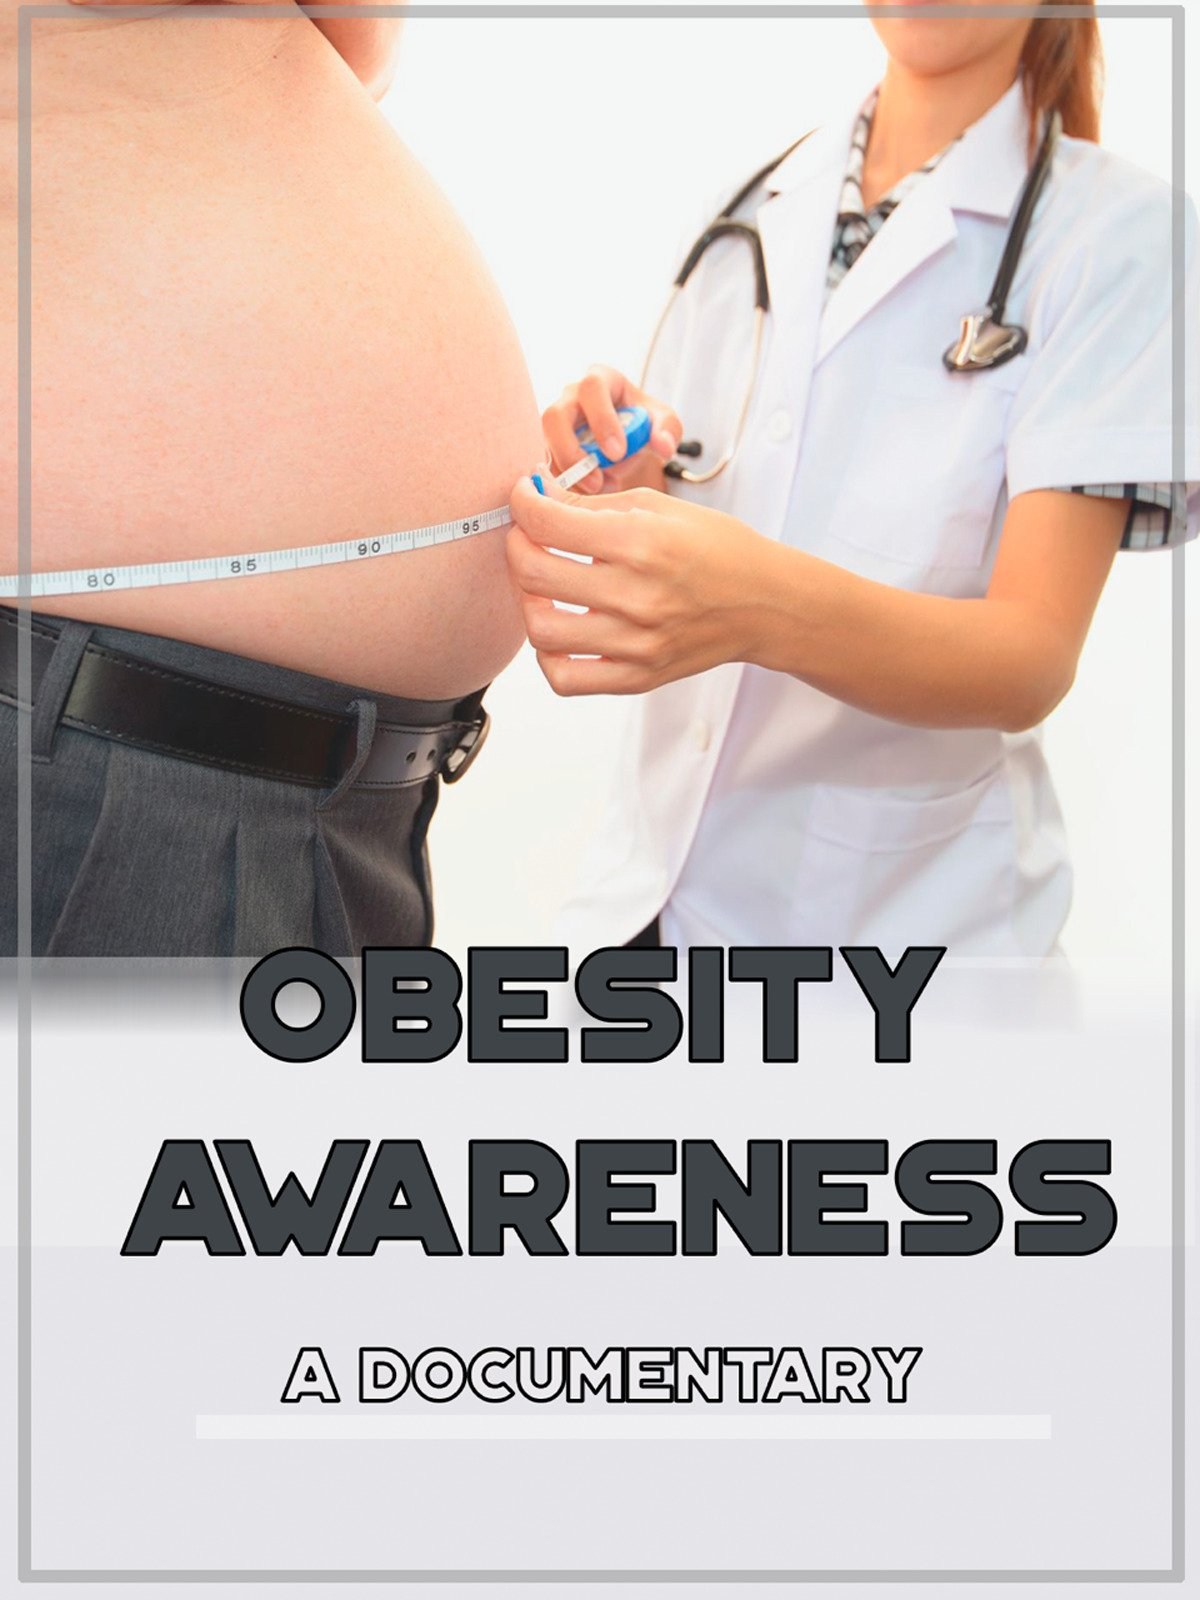 Obesity Awareness A Documentary